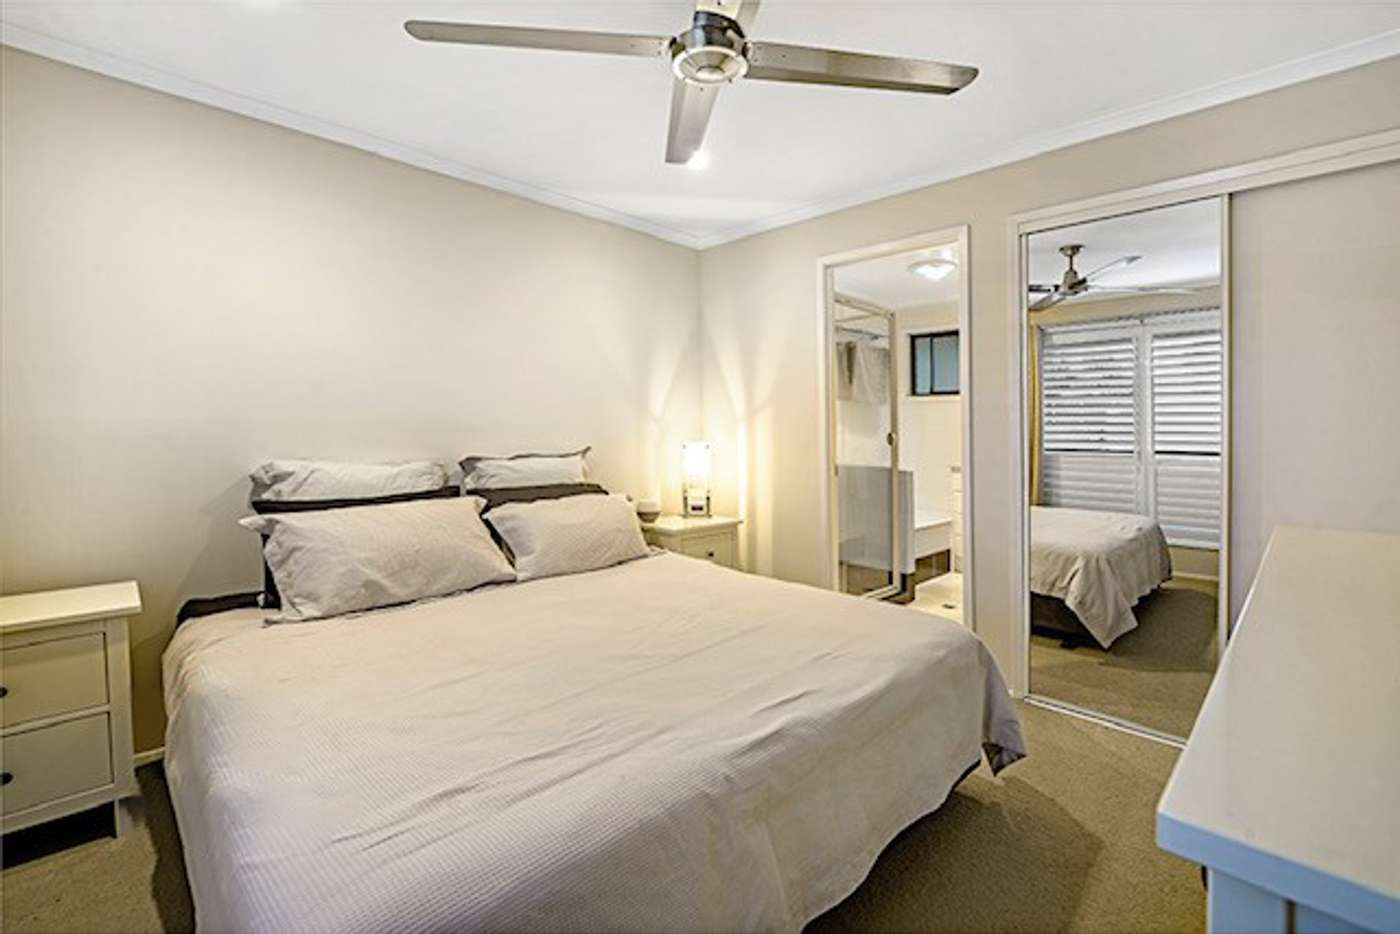 Sixth view of Homely house listing, 3 Newhaven Crescent, Worongary QLD 4213